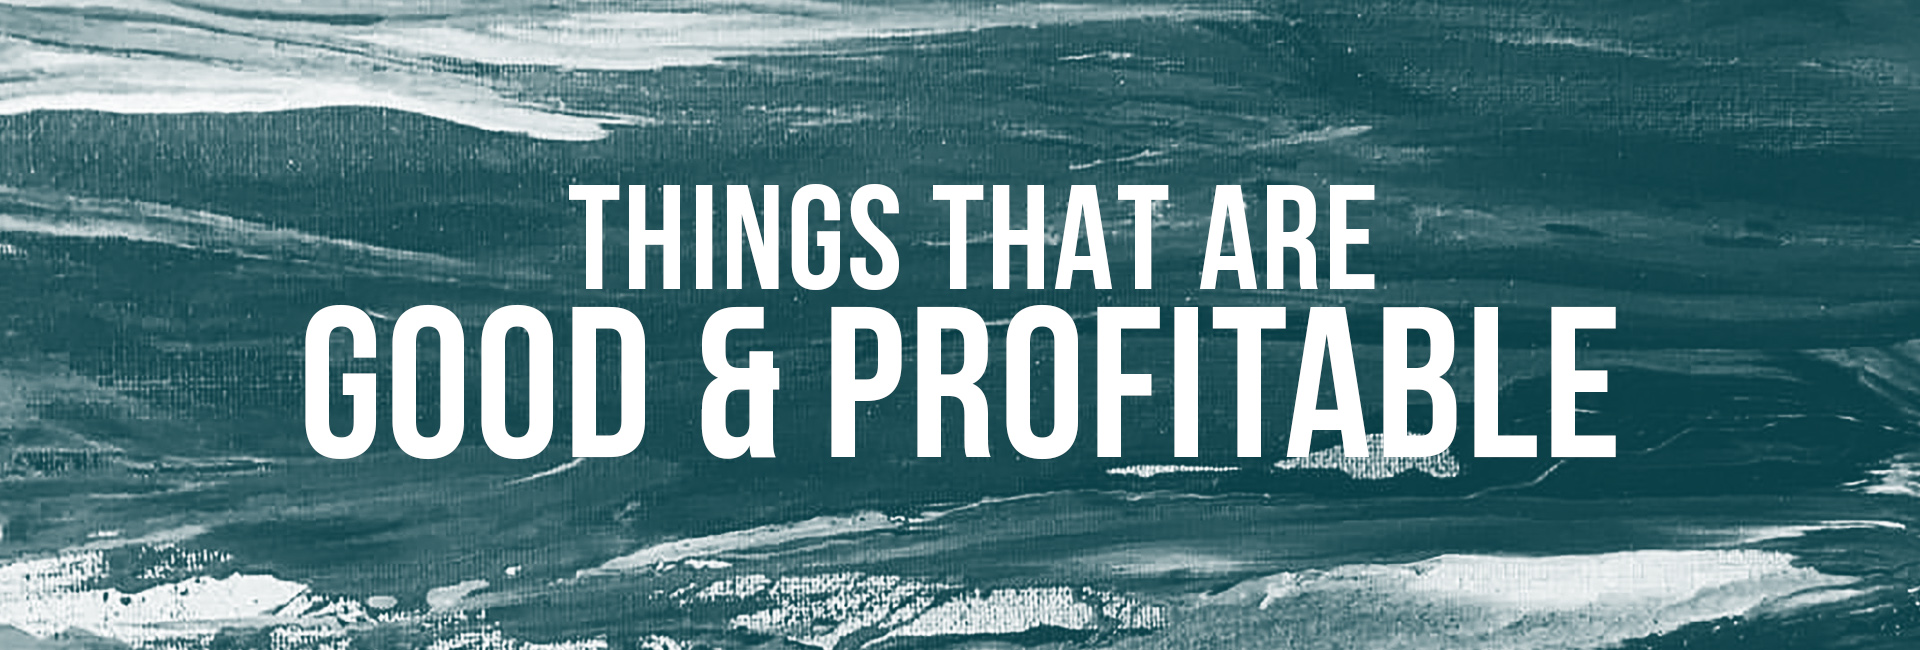 Things that are Good & Profitable